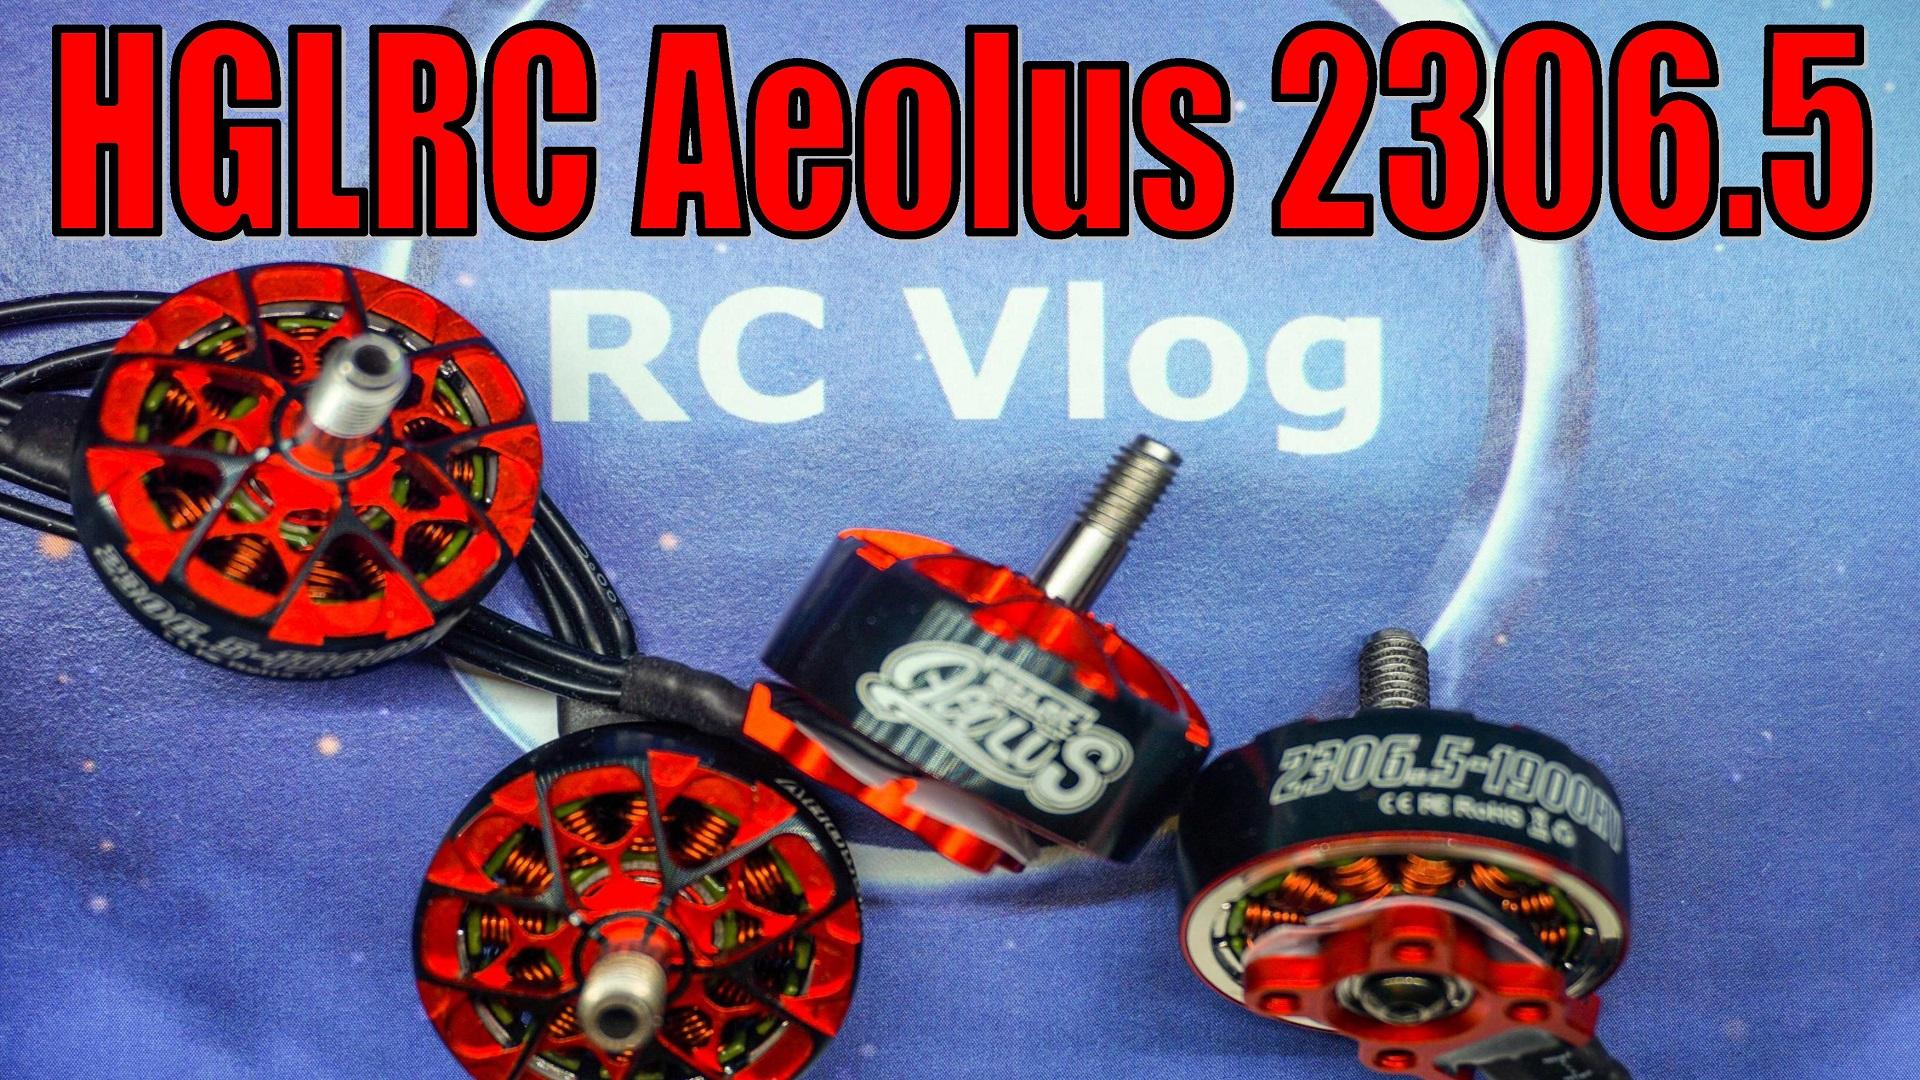 HGLRC Aeolus 2306.5 6S/1900KV 4S/2550KV Brushless Motors for FPV Racing RC Drone